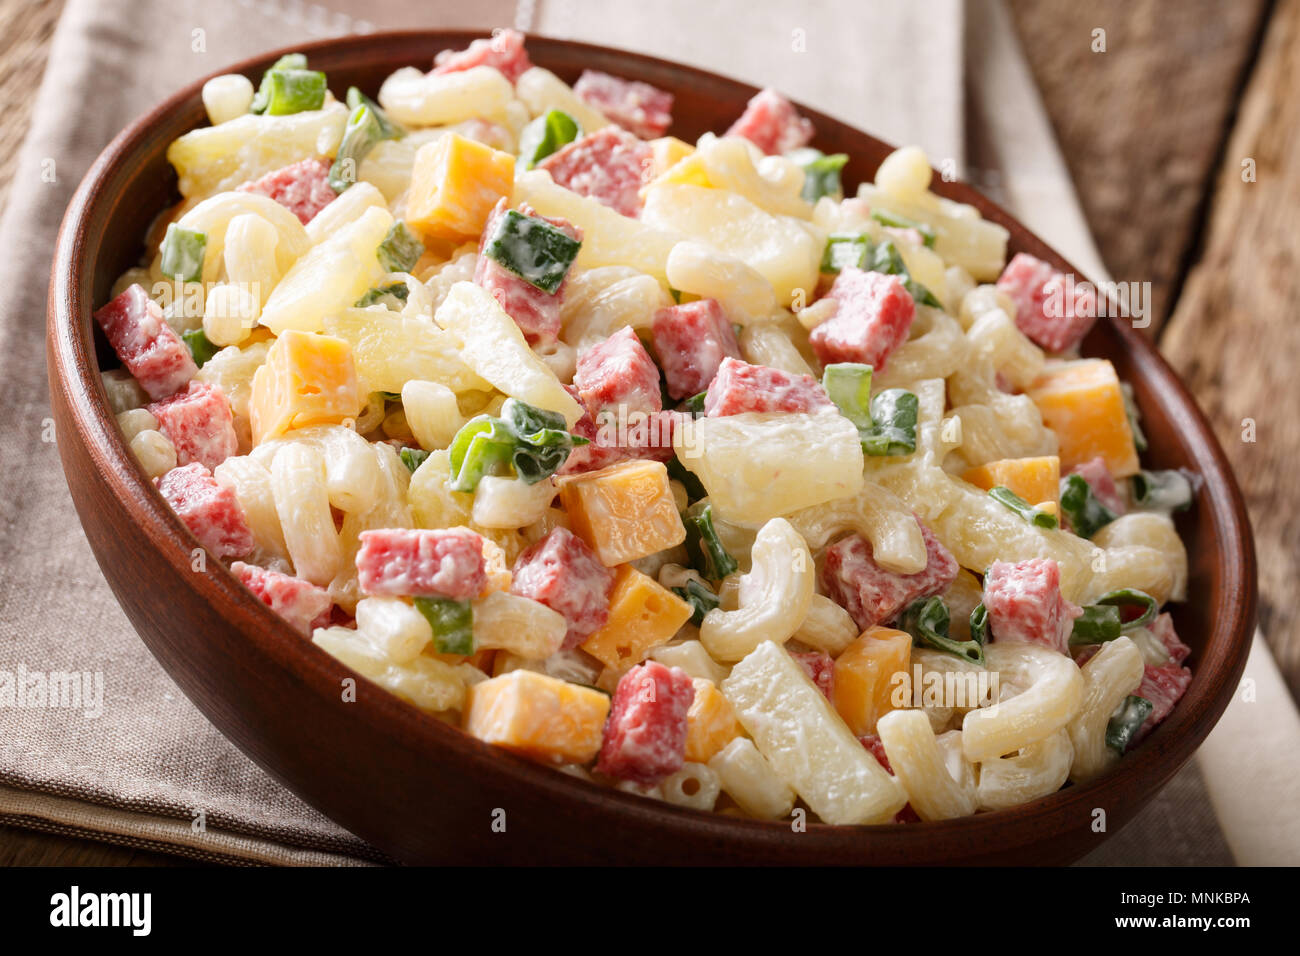 Hawaiian Food Salad With Pasta Ham Pineapple Onion Cheddar Cheese With Mayonnaise Close Up In A Bowl On The Table Horizontal